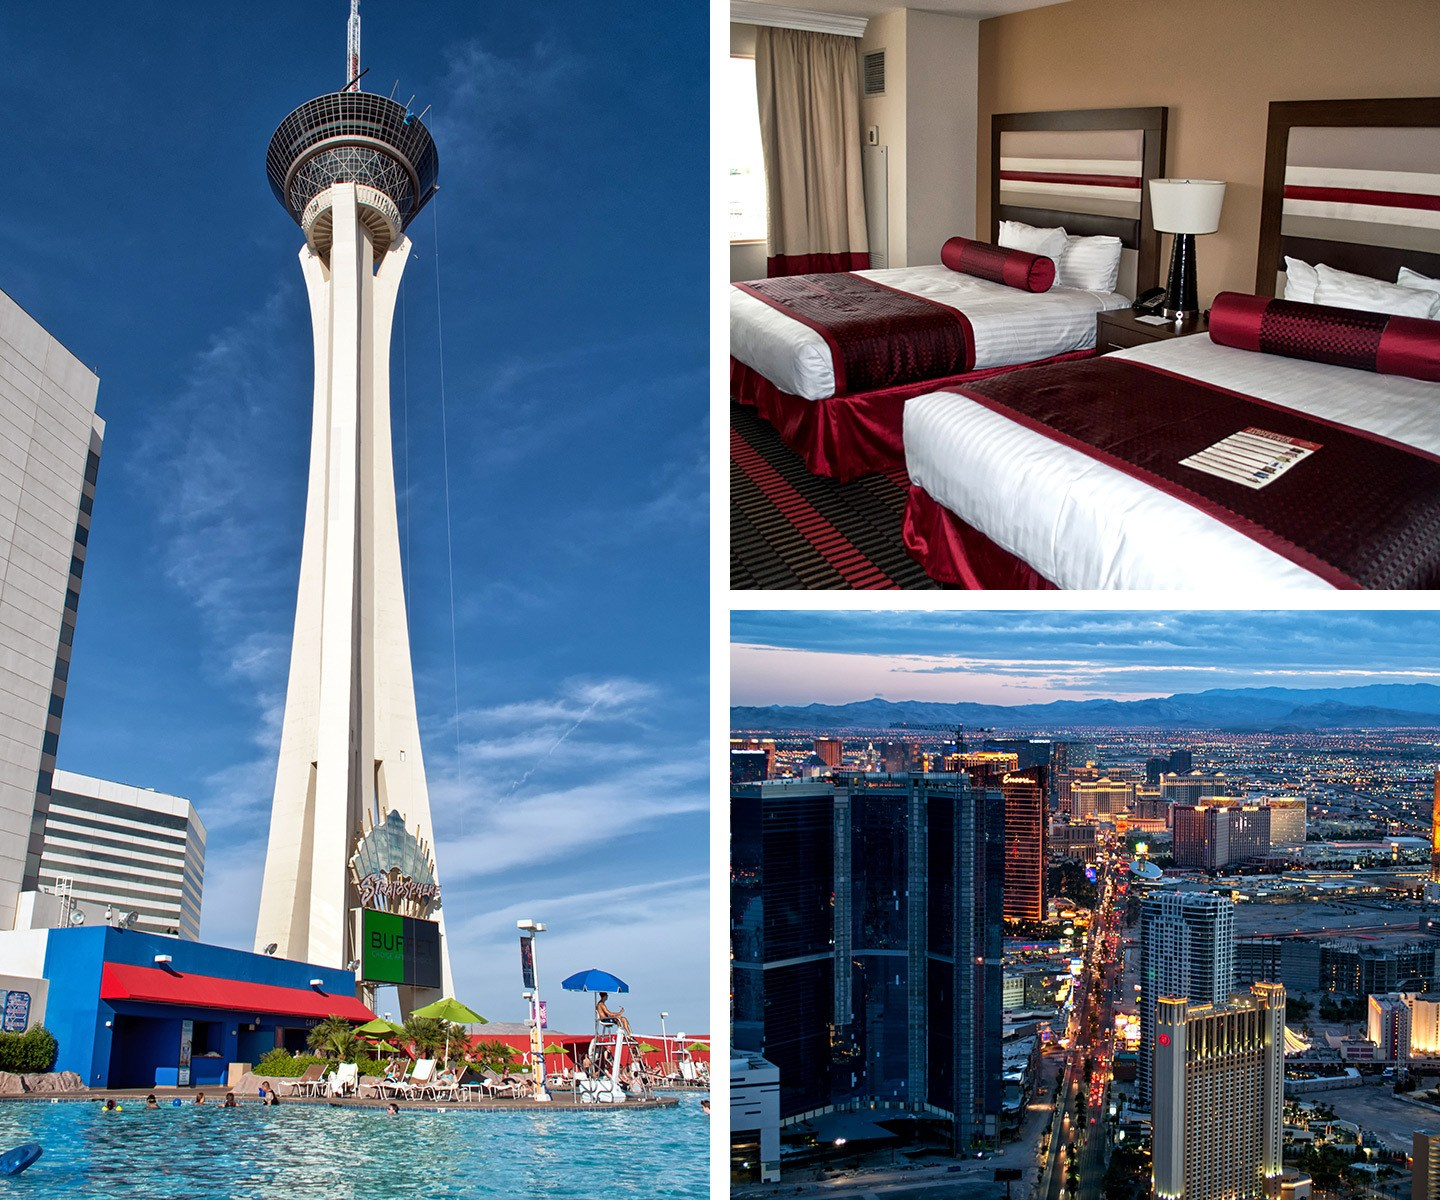 The Stratosphere hotel and casino on the Las Vegas Strip